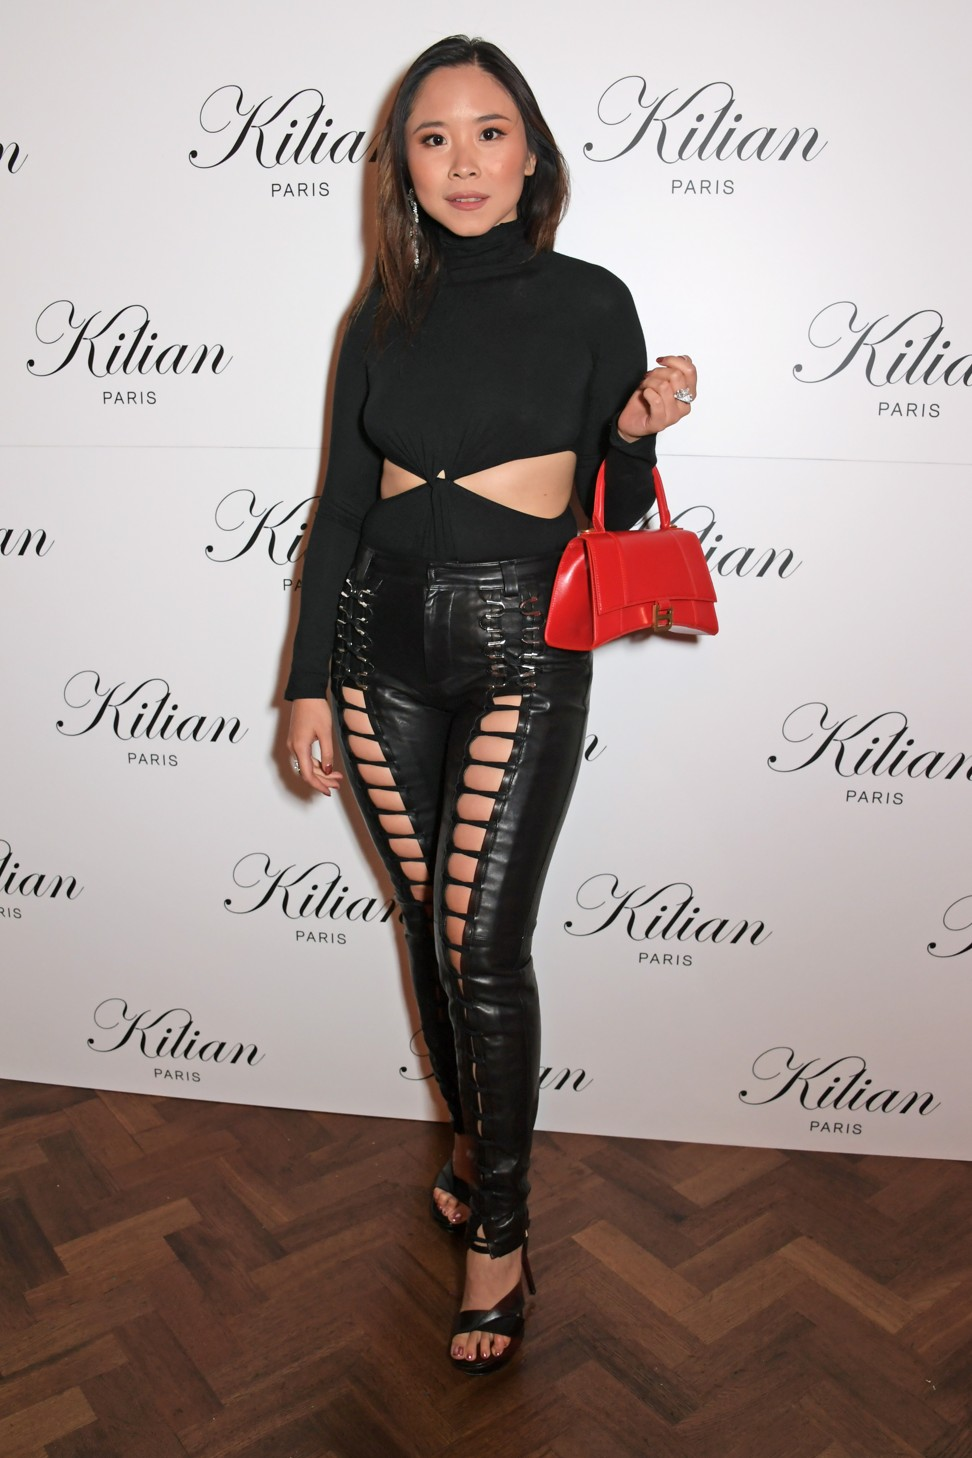 Nga Nguyen attends a recent fragrance launch at the Hotel Cafe Royal in London. Photo: David M. Benett/Dave Benett/Getty Images for Kilian